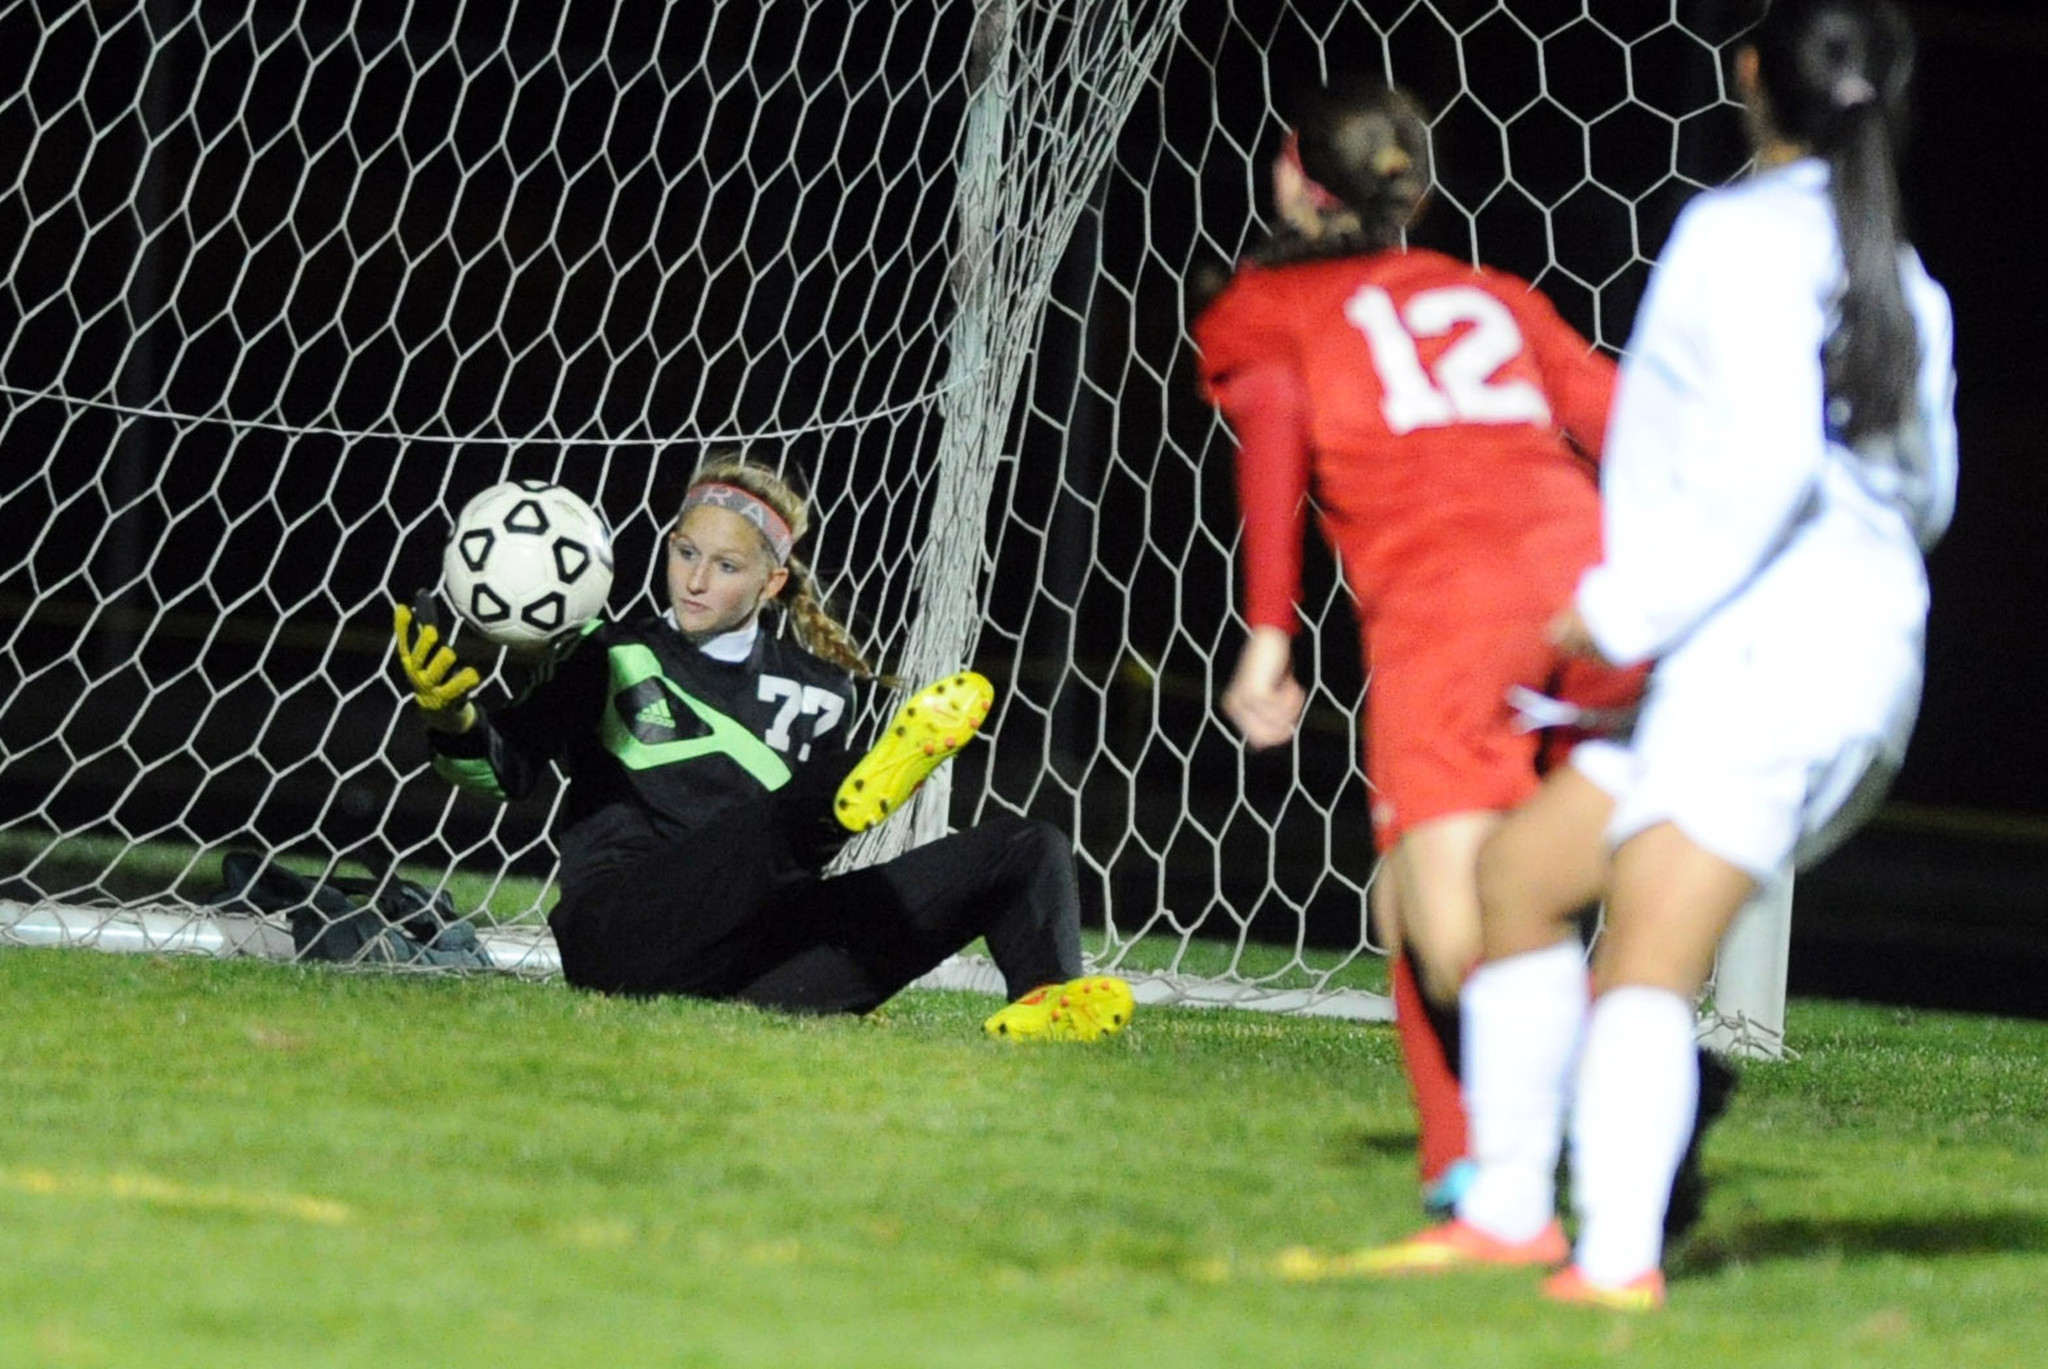 Centennial girls soccer earns its first win in season ...